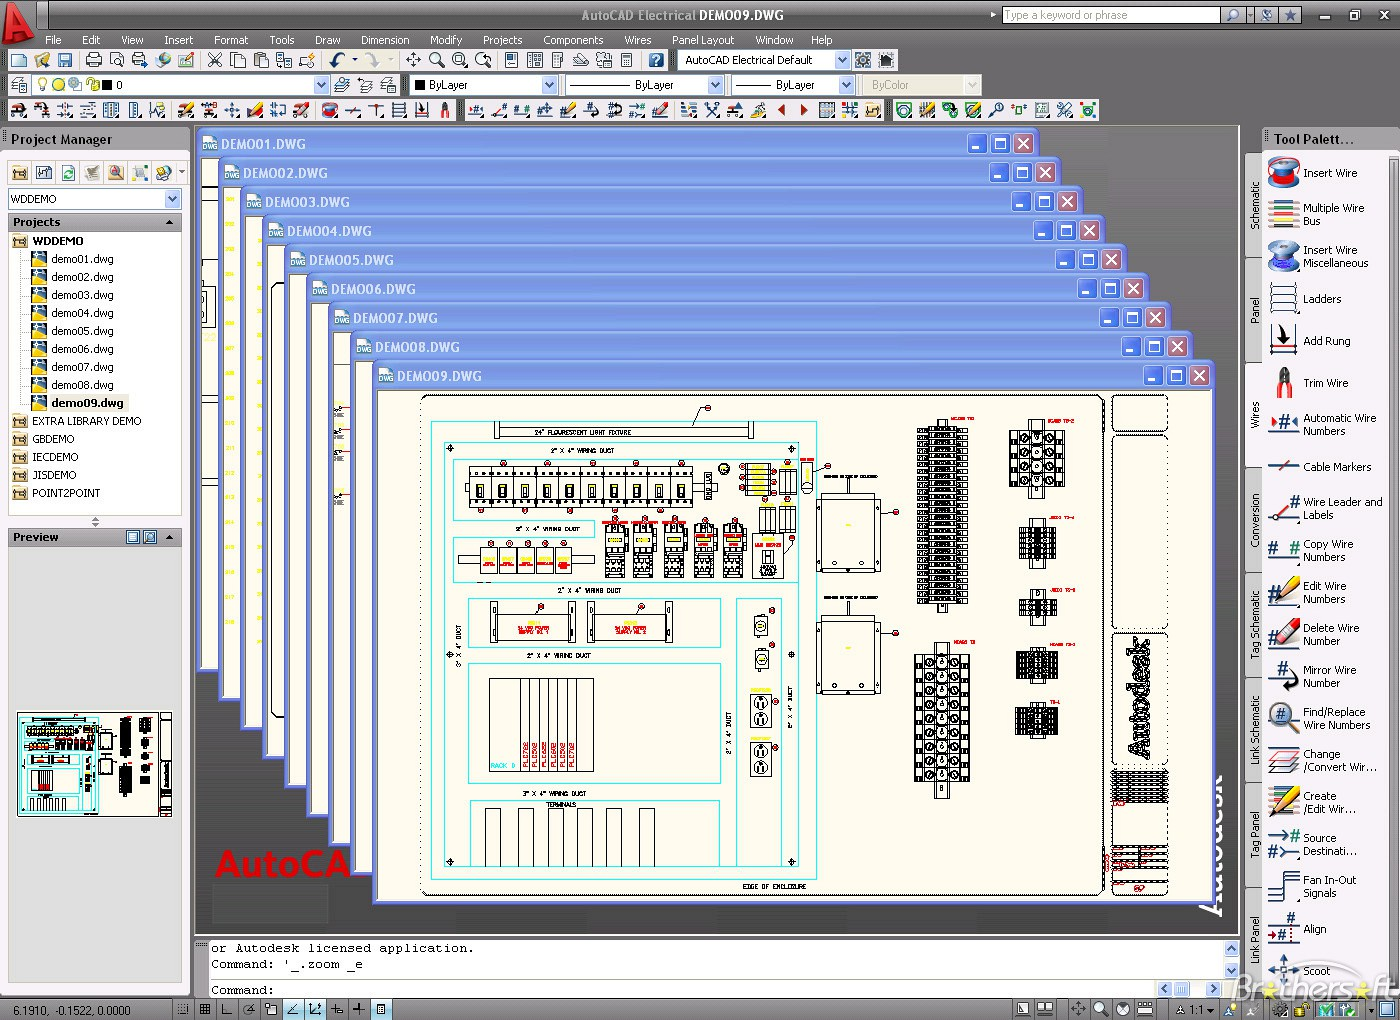 what is the price of AutoCAD Electrical 2014